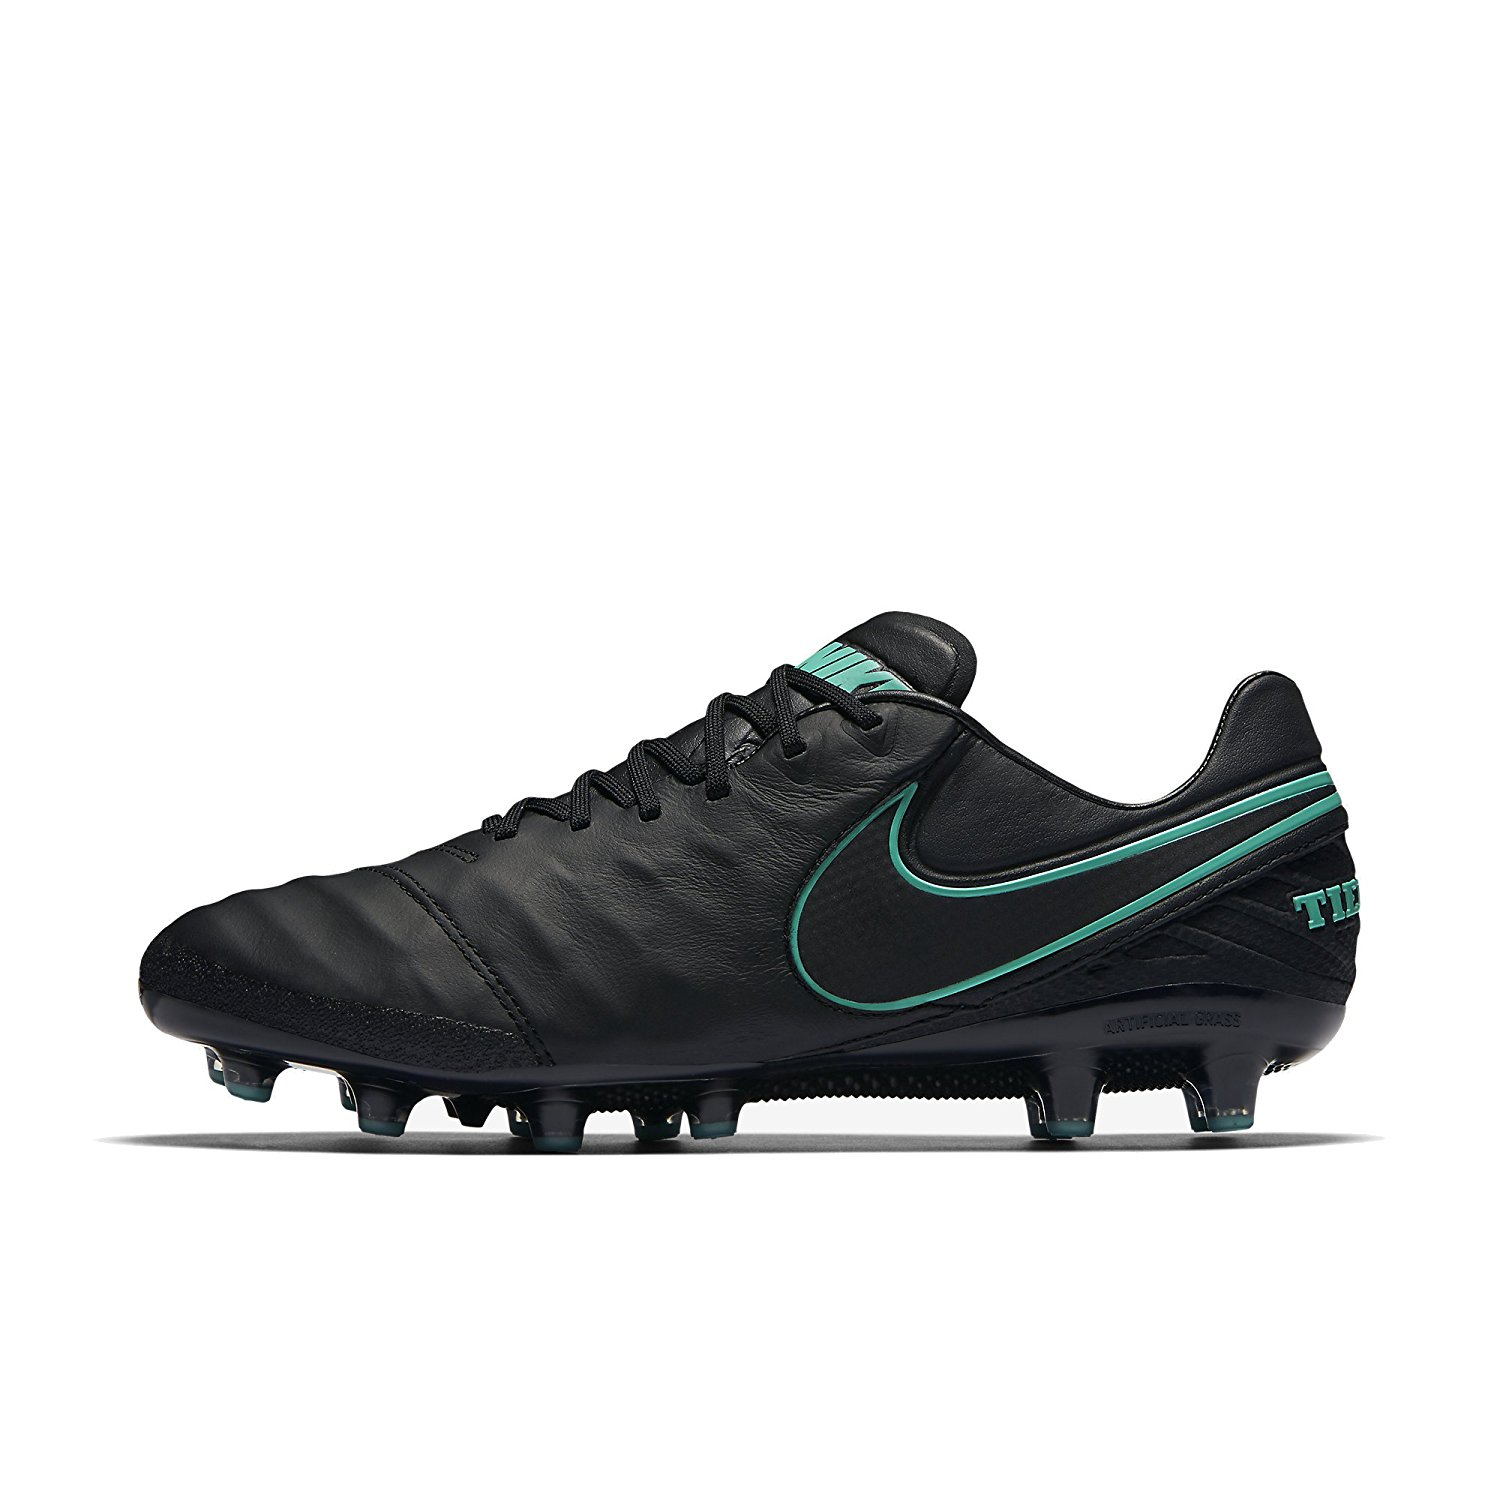 a624feb9a16 Get Quotations · Nike Mens Tiempo Legend VI All Ground Cleats